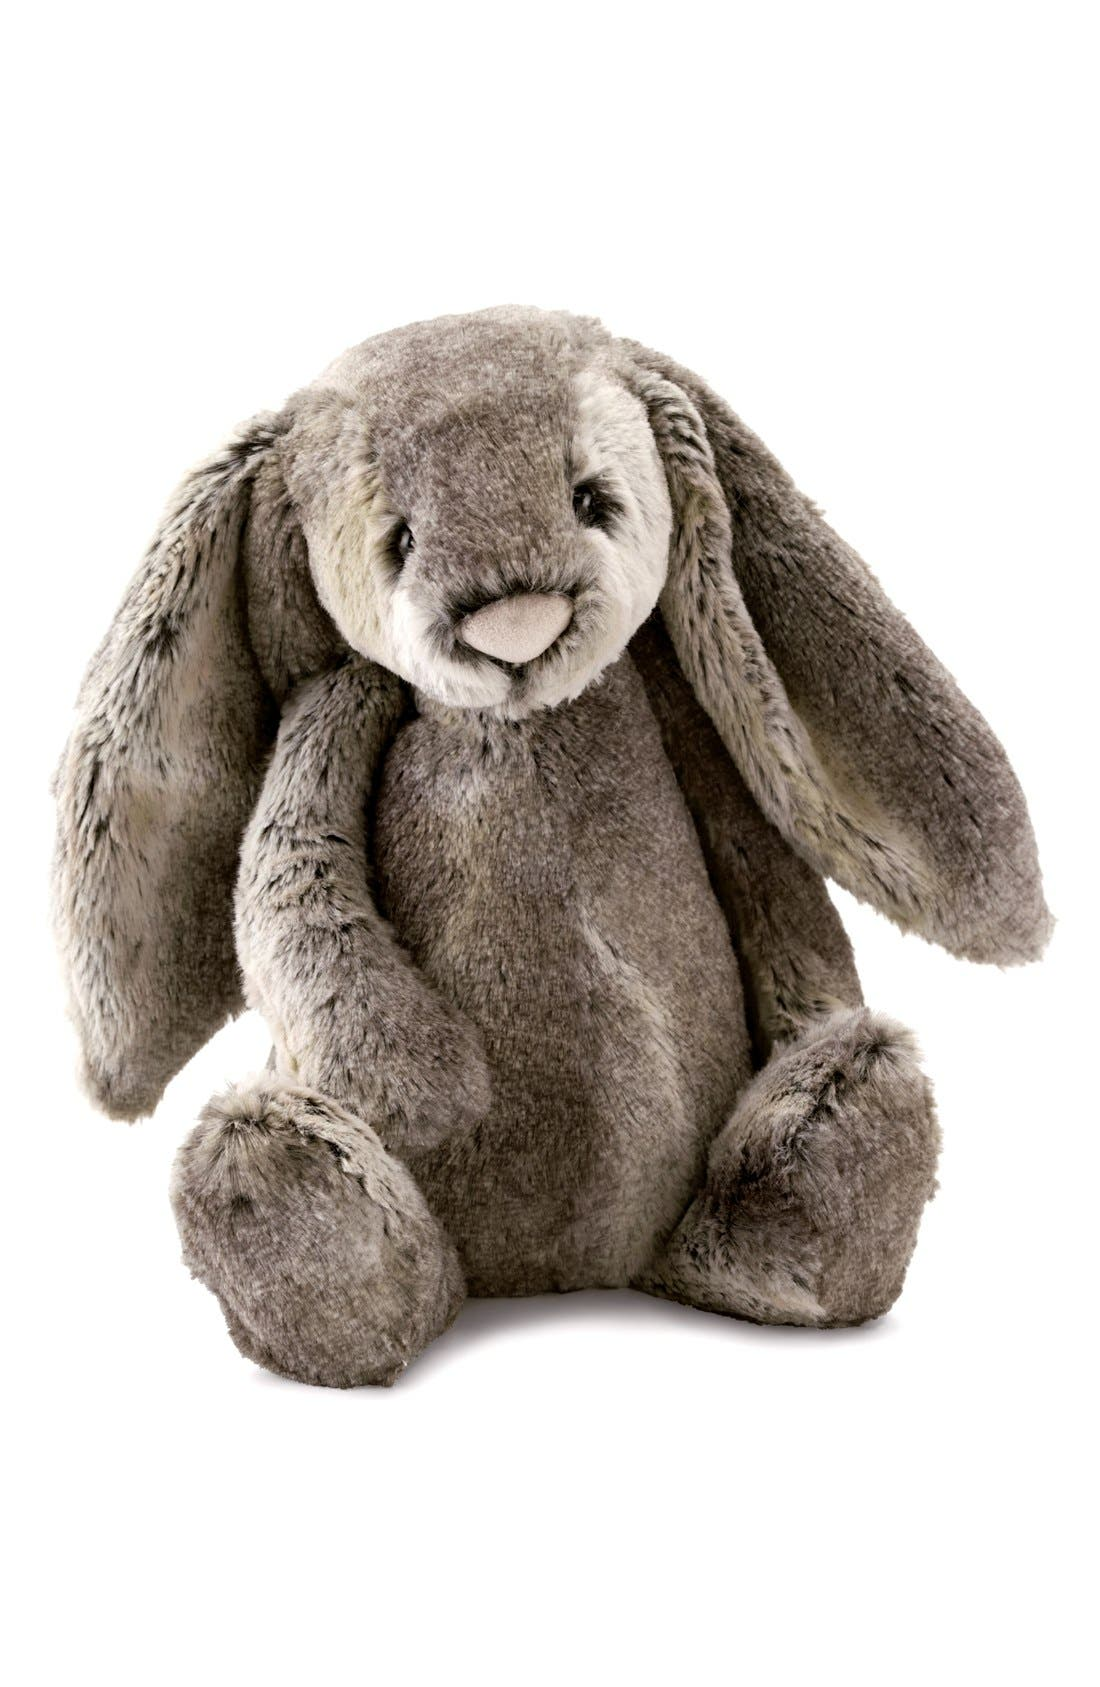 'Huge Woodland Bunny' Stuffed Animal,                             Main thumbnail 1, color,                             060